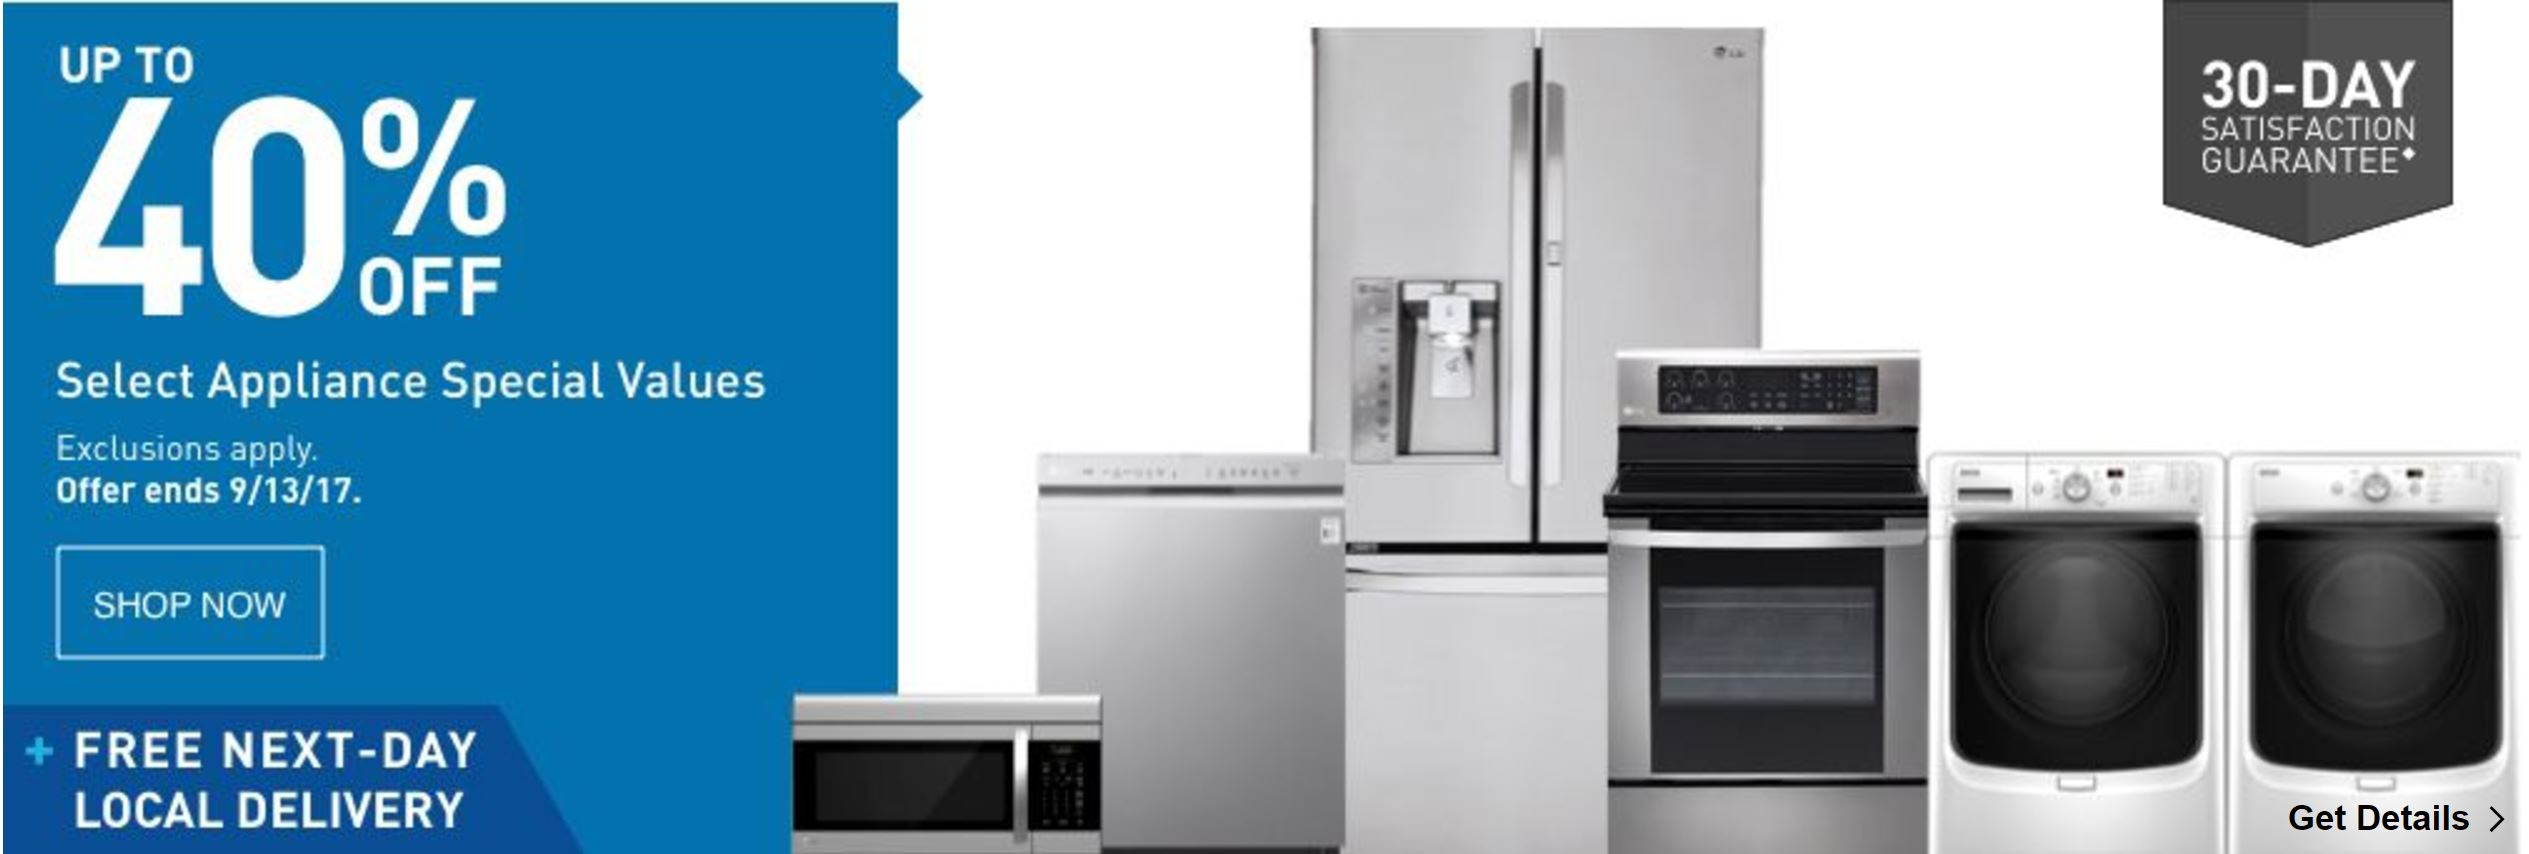 Top 5 Labor Day Sales for Home: Big Appliances, Must-Have Furniture ...